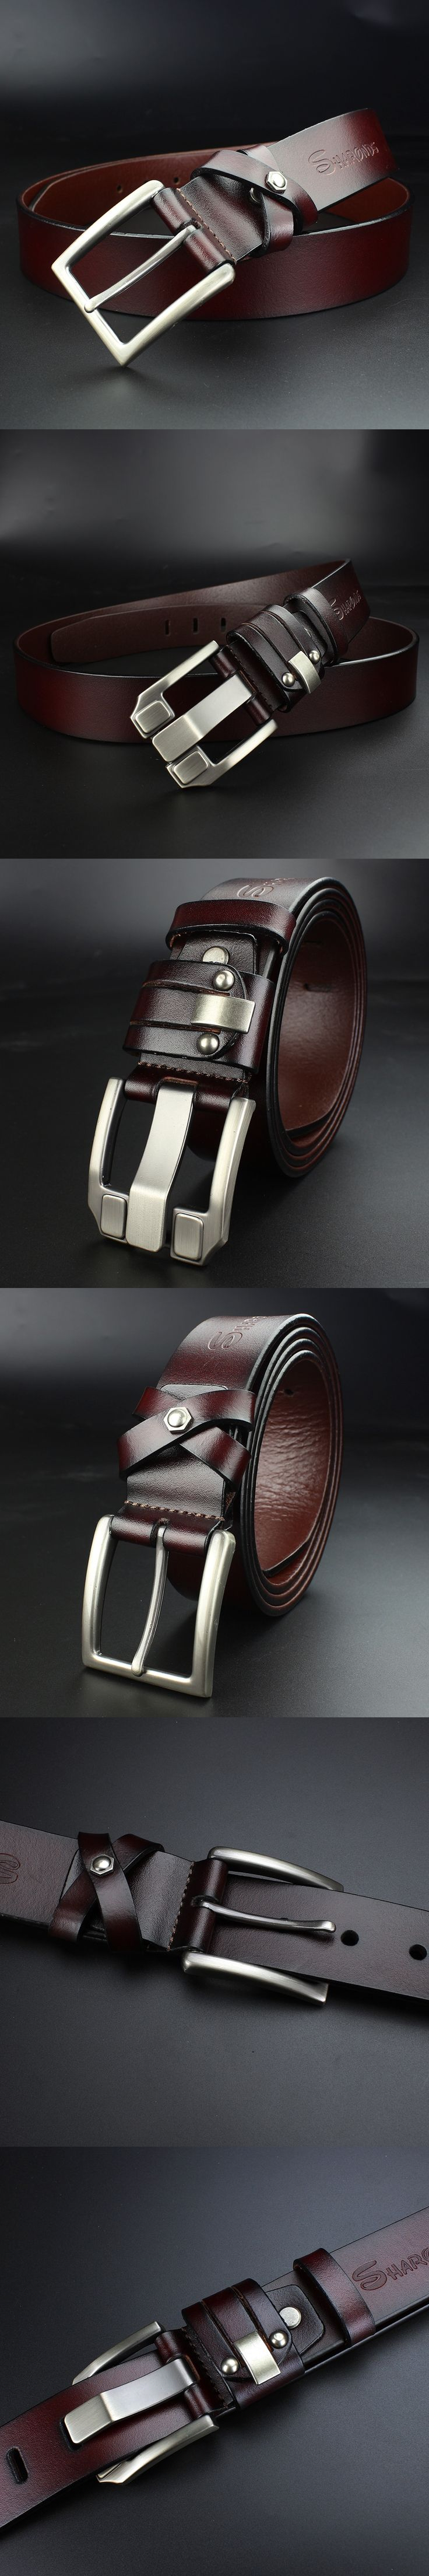 Men's belt luxury designer High quality Genuine leather man belt Pure cowhide skin strap male Formal men girdles